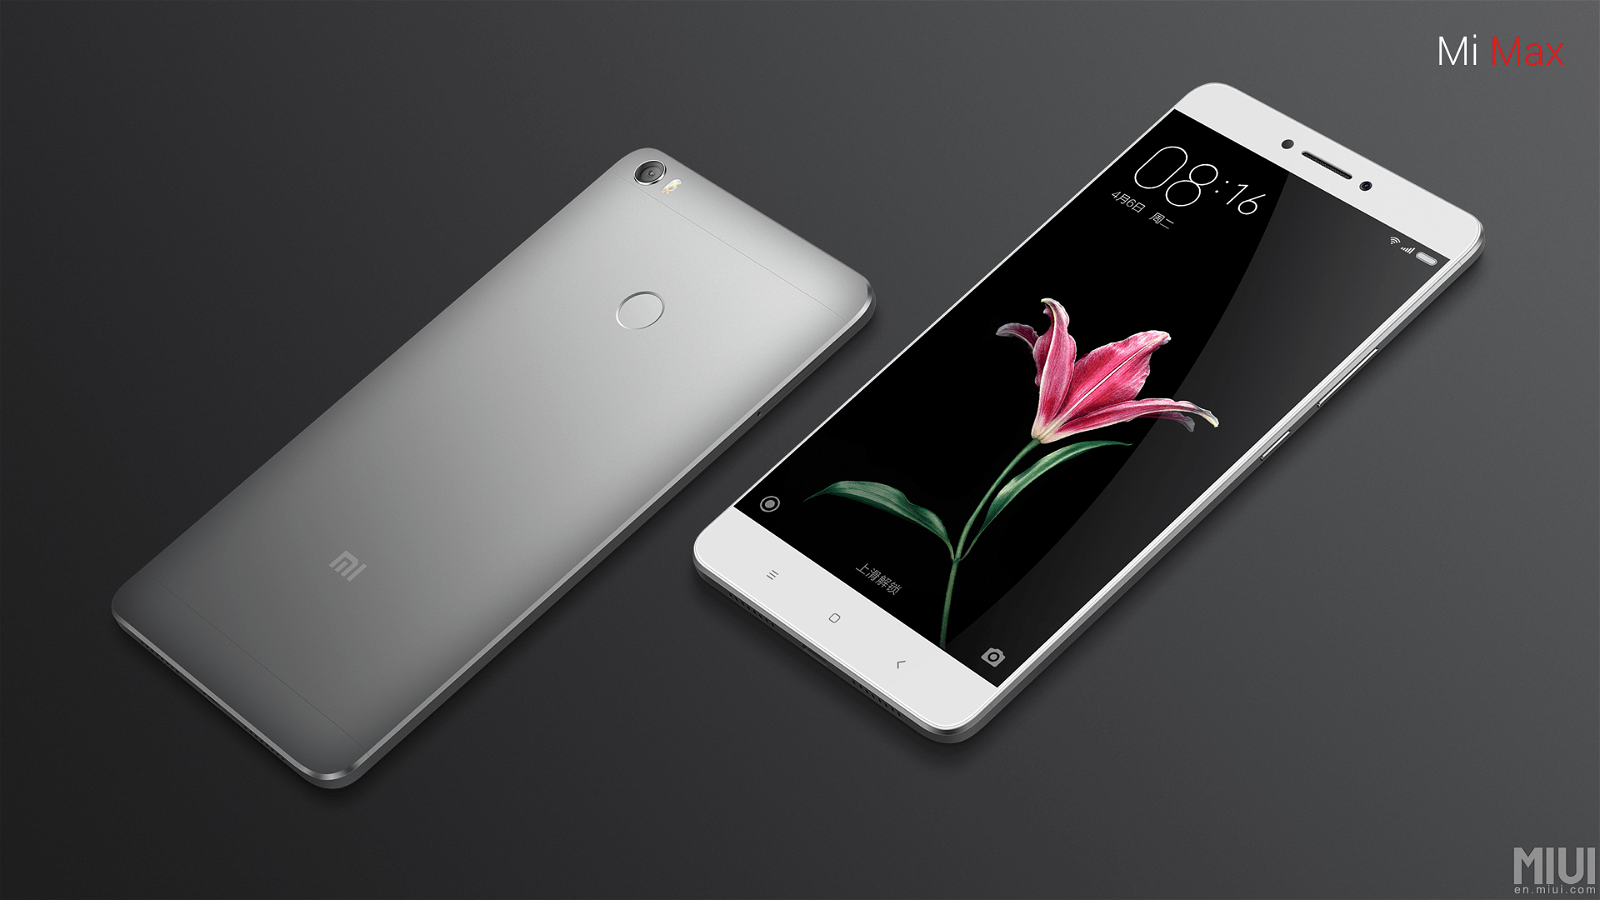 Chinese Phone Company Xiaomi Announces MIUI 8 And Mi Max 2